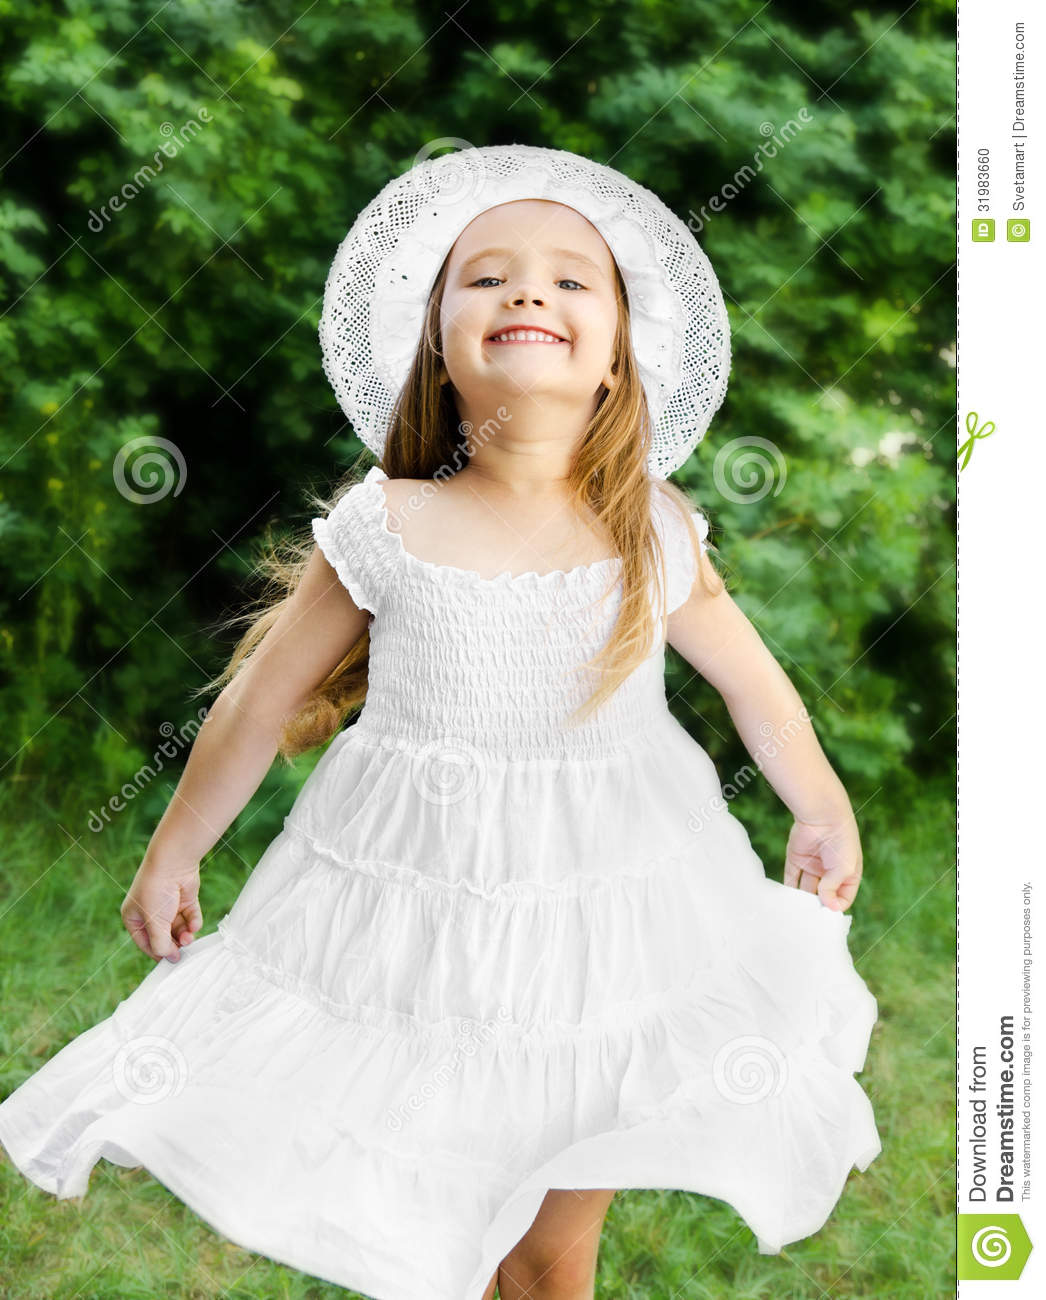 95173a2de Portrait Of Adorable Smiling Little Girl In White Dress And Hat ...